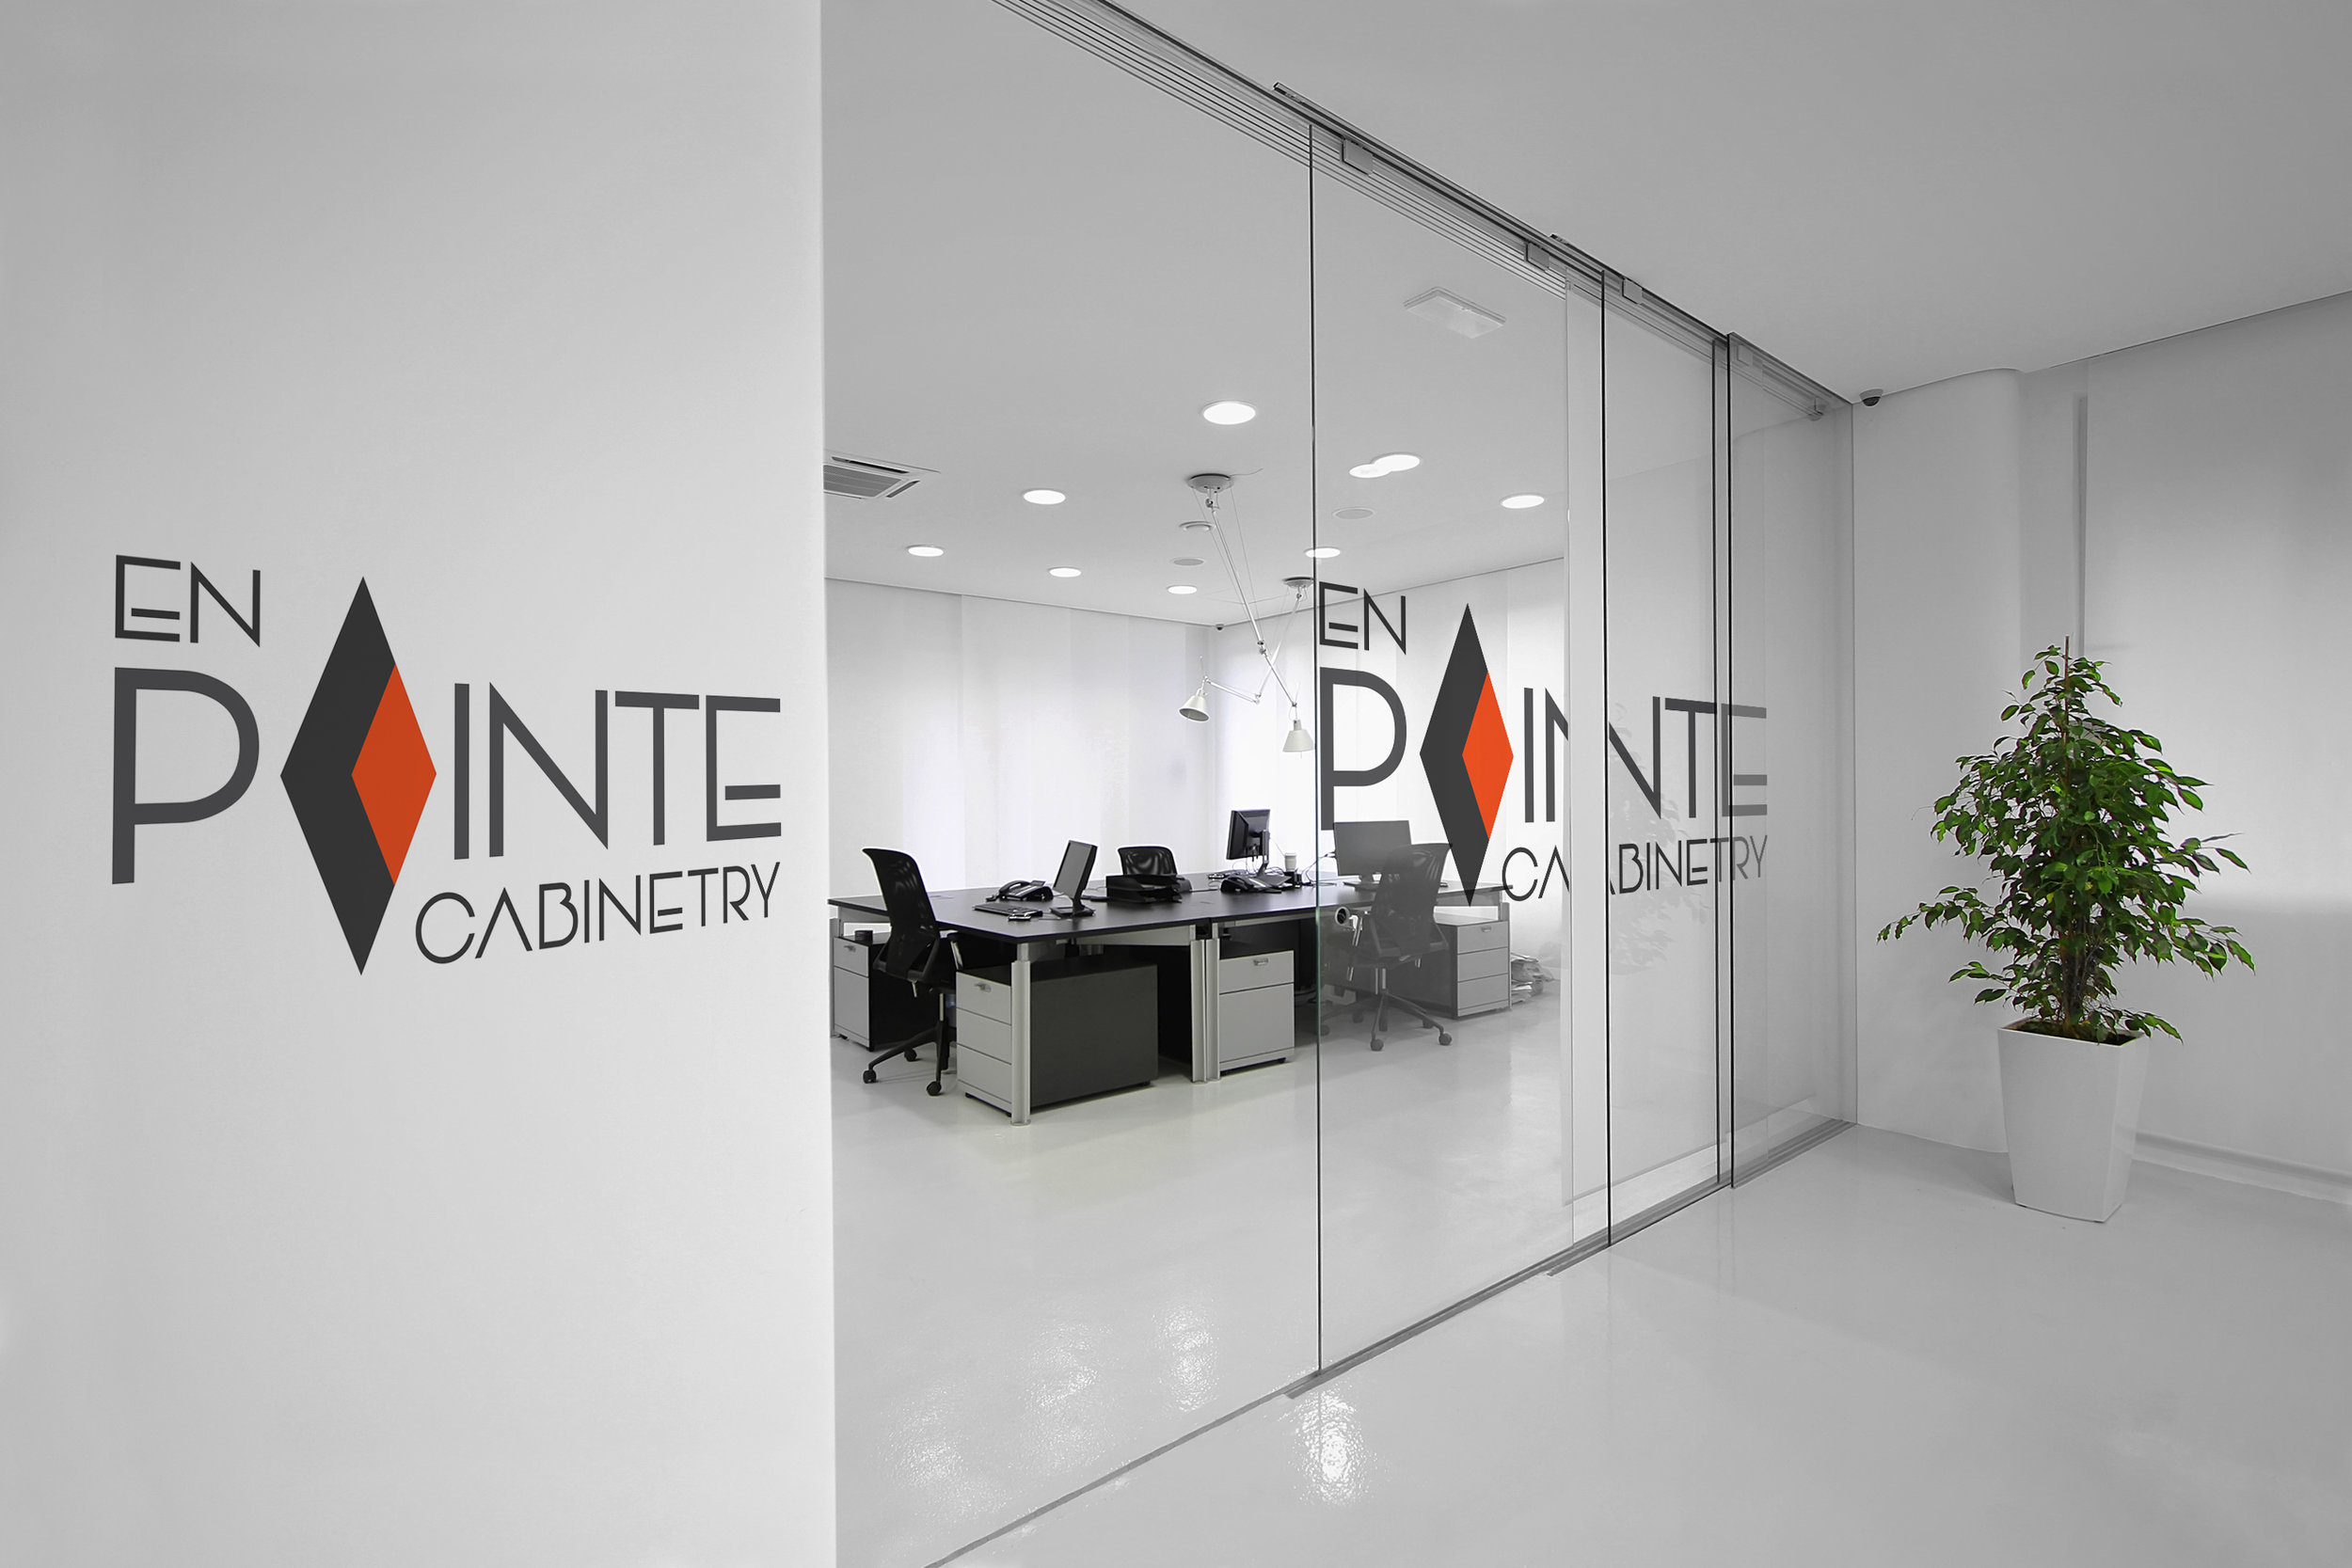 enPointe-office-mockup.jpg